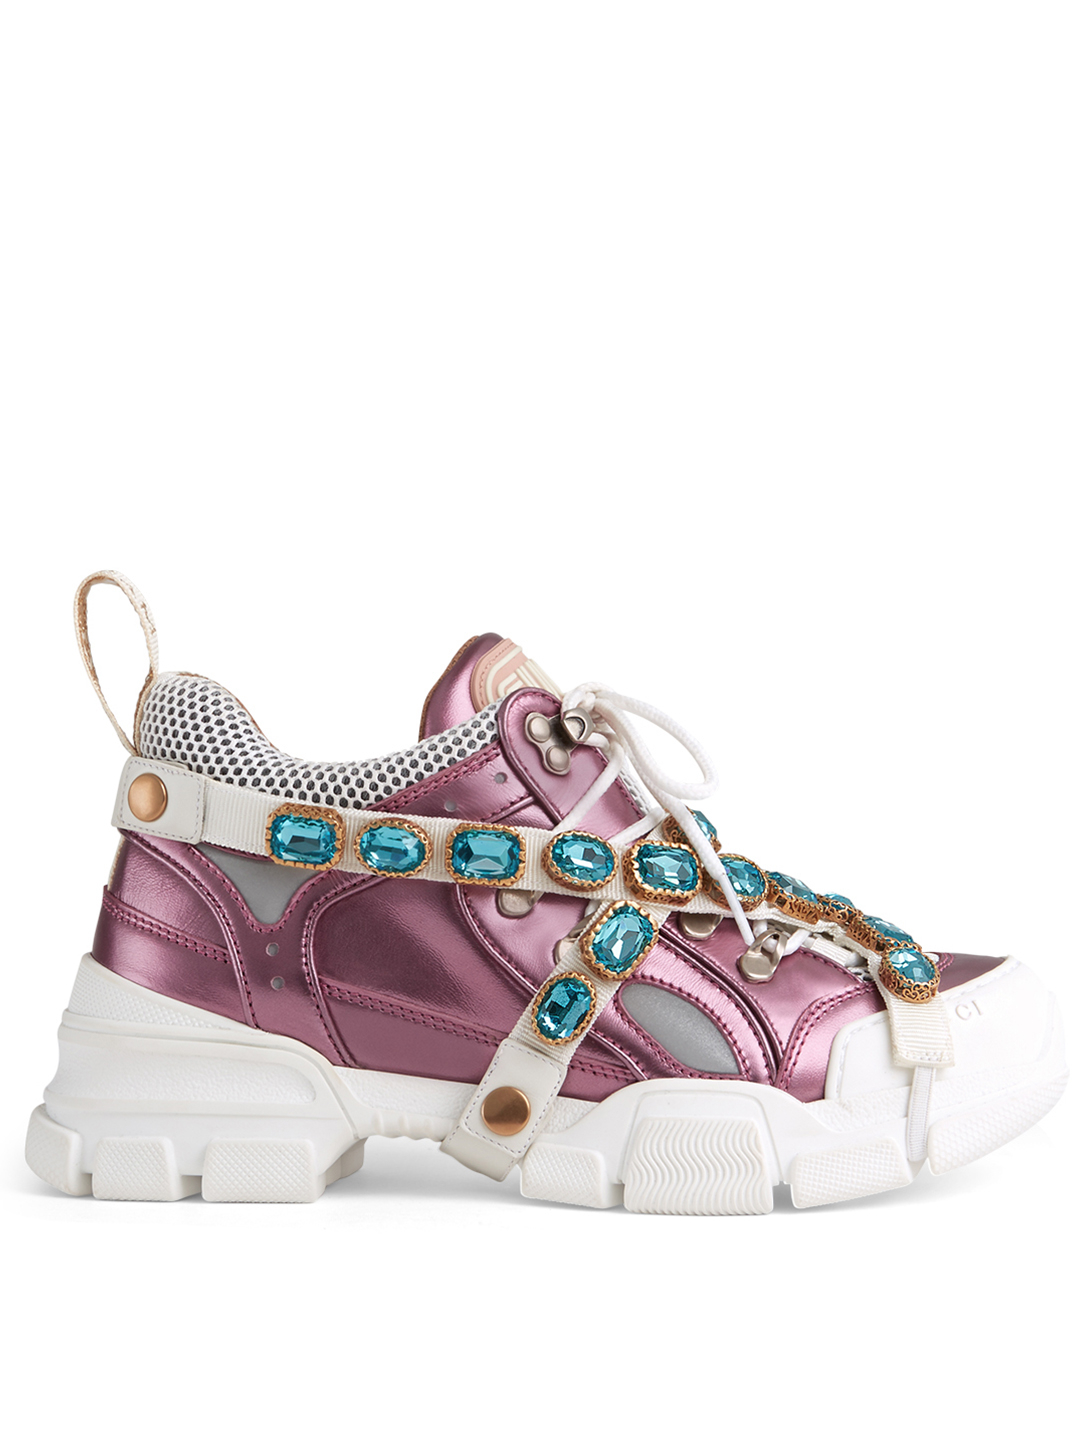 724e04e836464 GUCCI Flashtrek Sneakers With Removable Crystal Straps